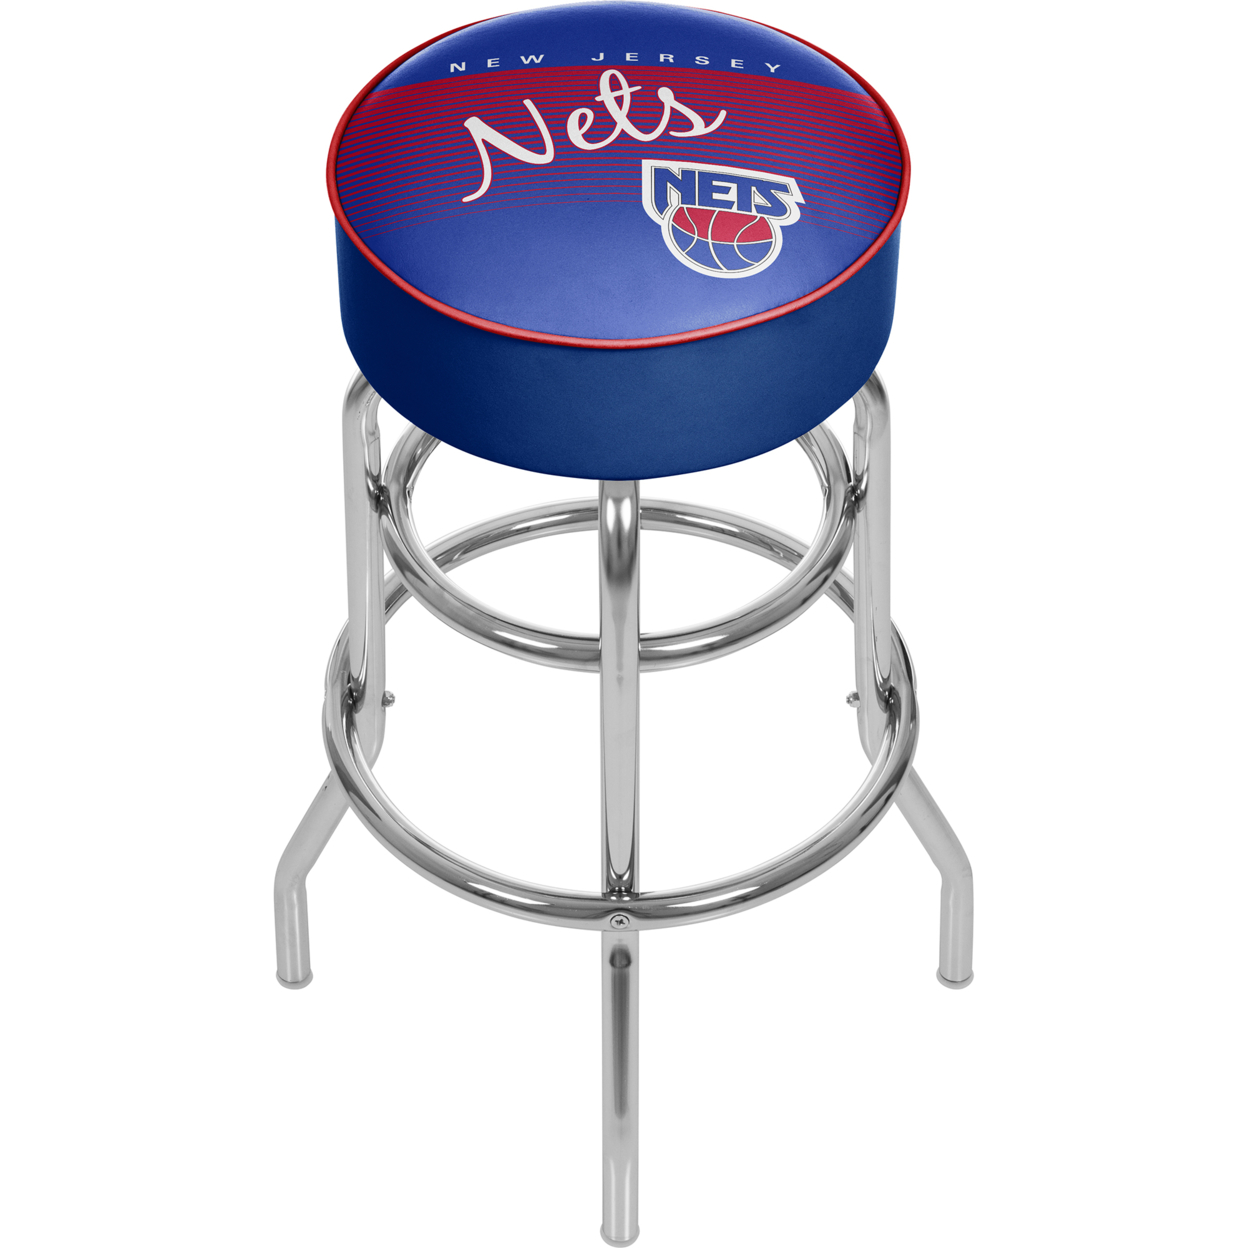 New Jersey Nets NBA Hardwood Classics Padded Swivel Bar Stool 30 Inches High